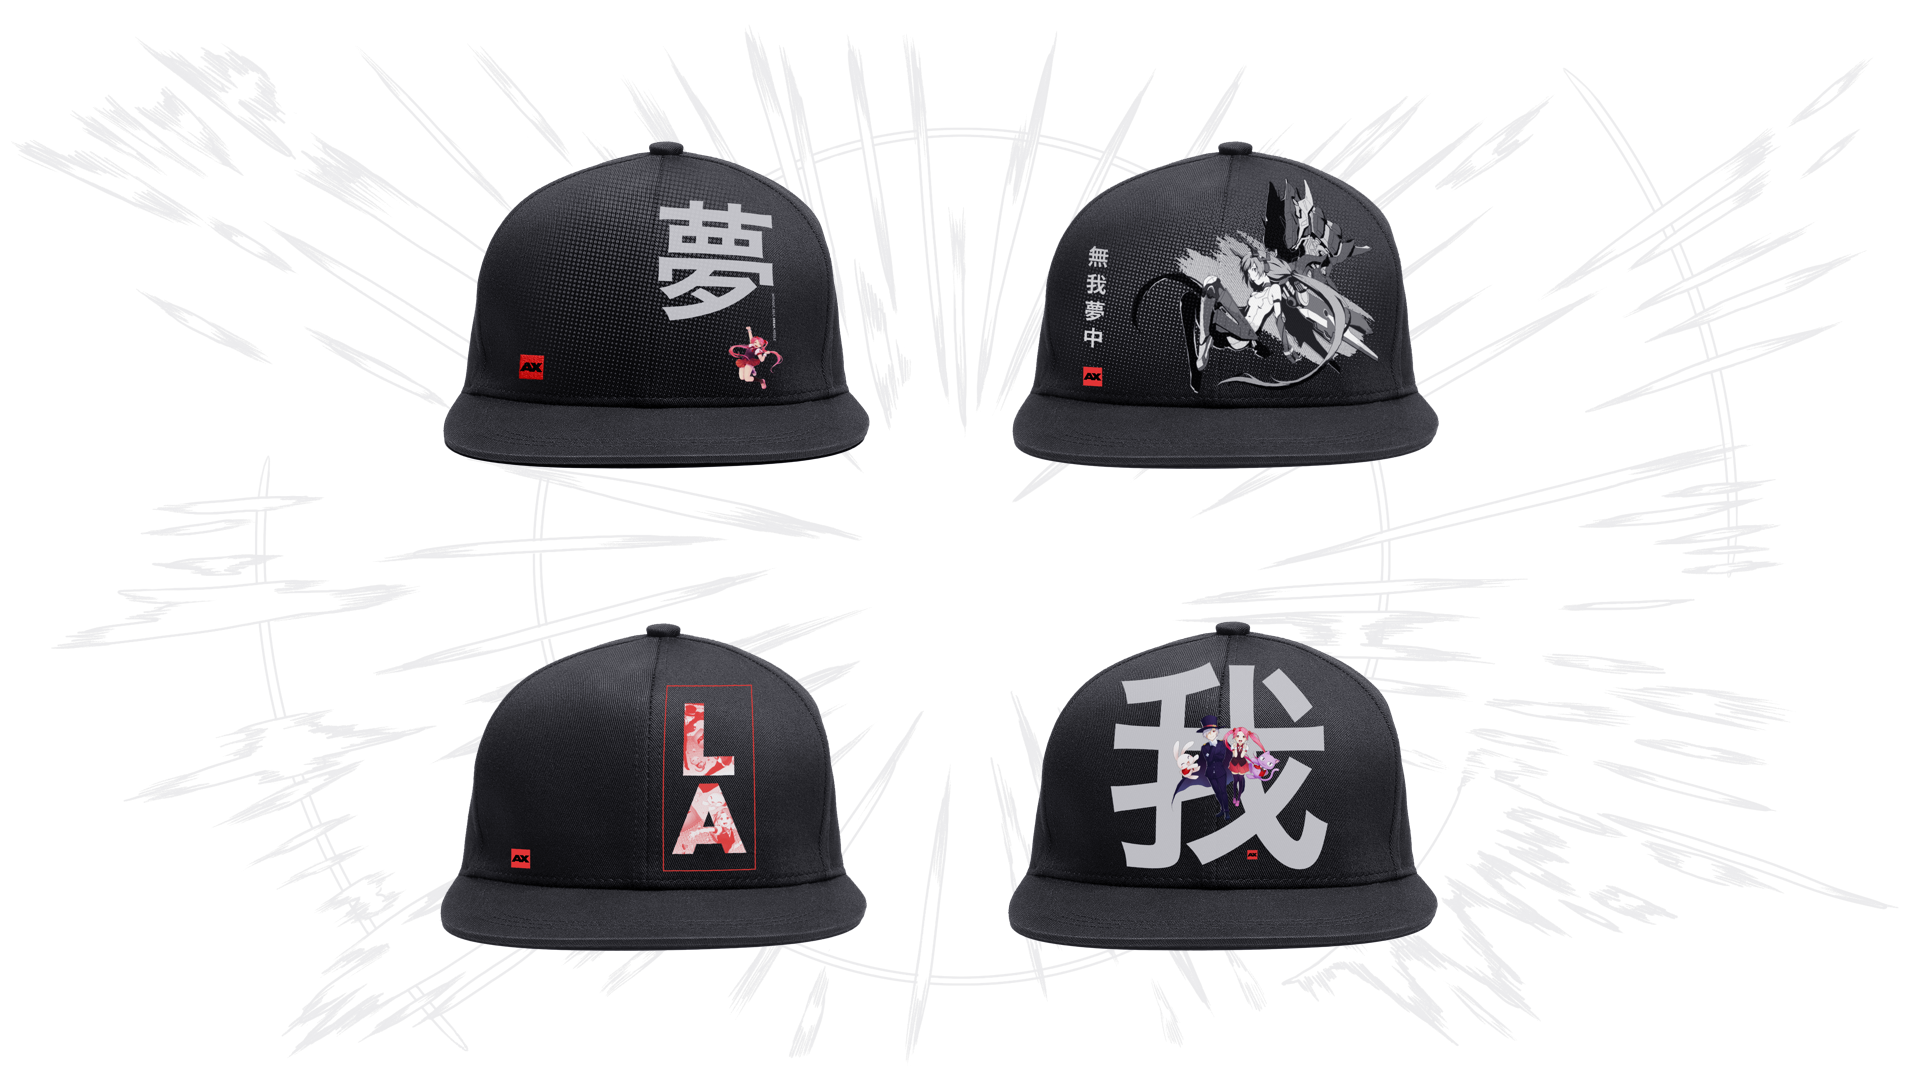 Anime Expo Design For Merchandise Apparel And Collectibles